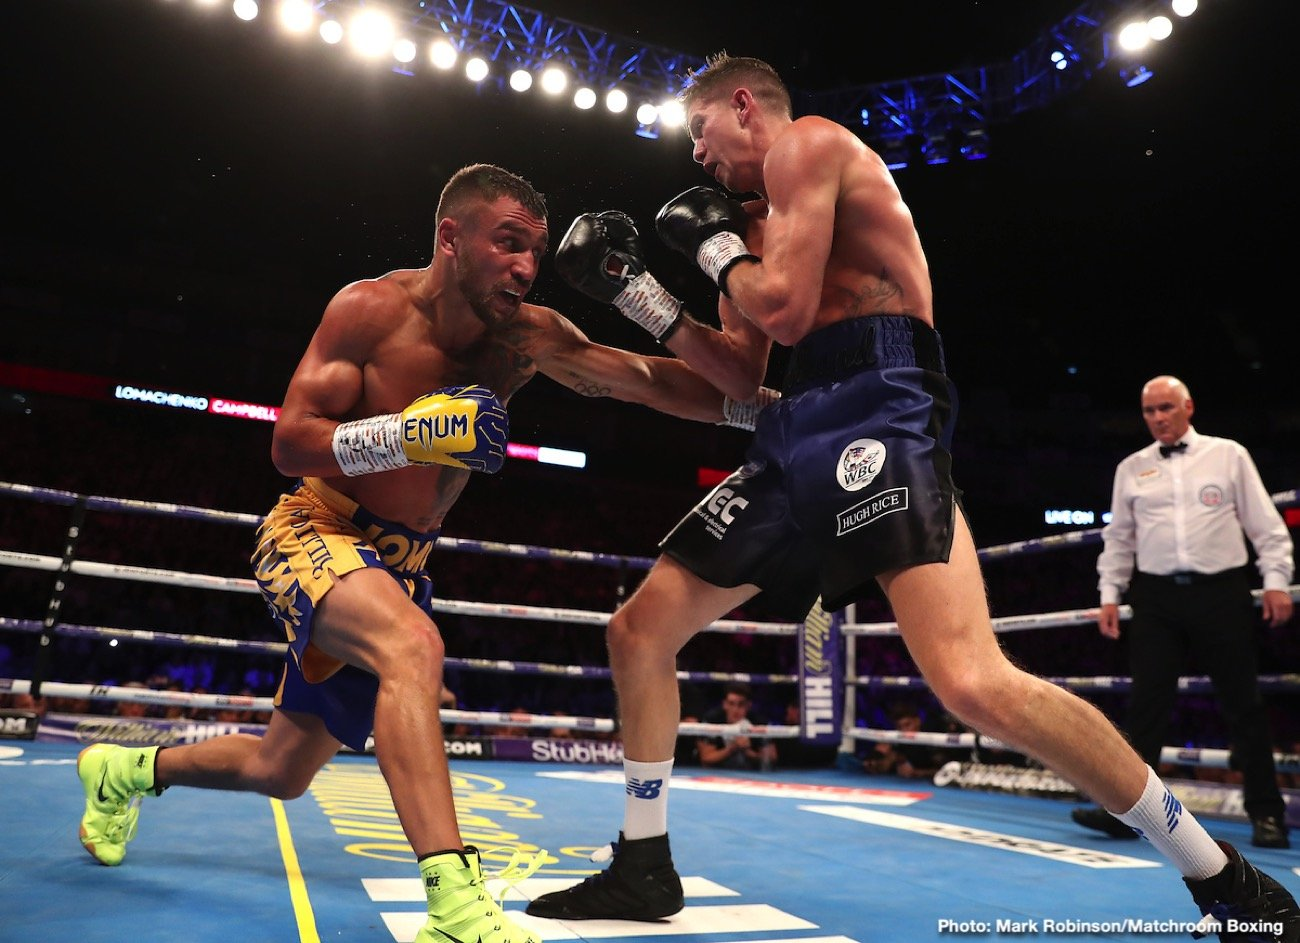 Devin Haney, Vasiliy Lomachenko, WBC - WBA/WBC/WBO lightweight champion Vasiliy Lomachenko is poised to be the World Boxing Council's next Franchise champion. Interim WBC champion Devin Haney is saying that he believes that the 31-year-old Lomachenko (14-1, 10 KOs) will be given the WBC Franchise tag. When that happens, Haney says he'll likely be moved up to WBC 'regular' lightweight champion status.